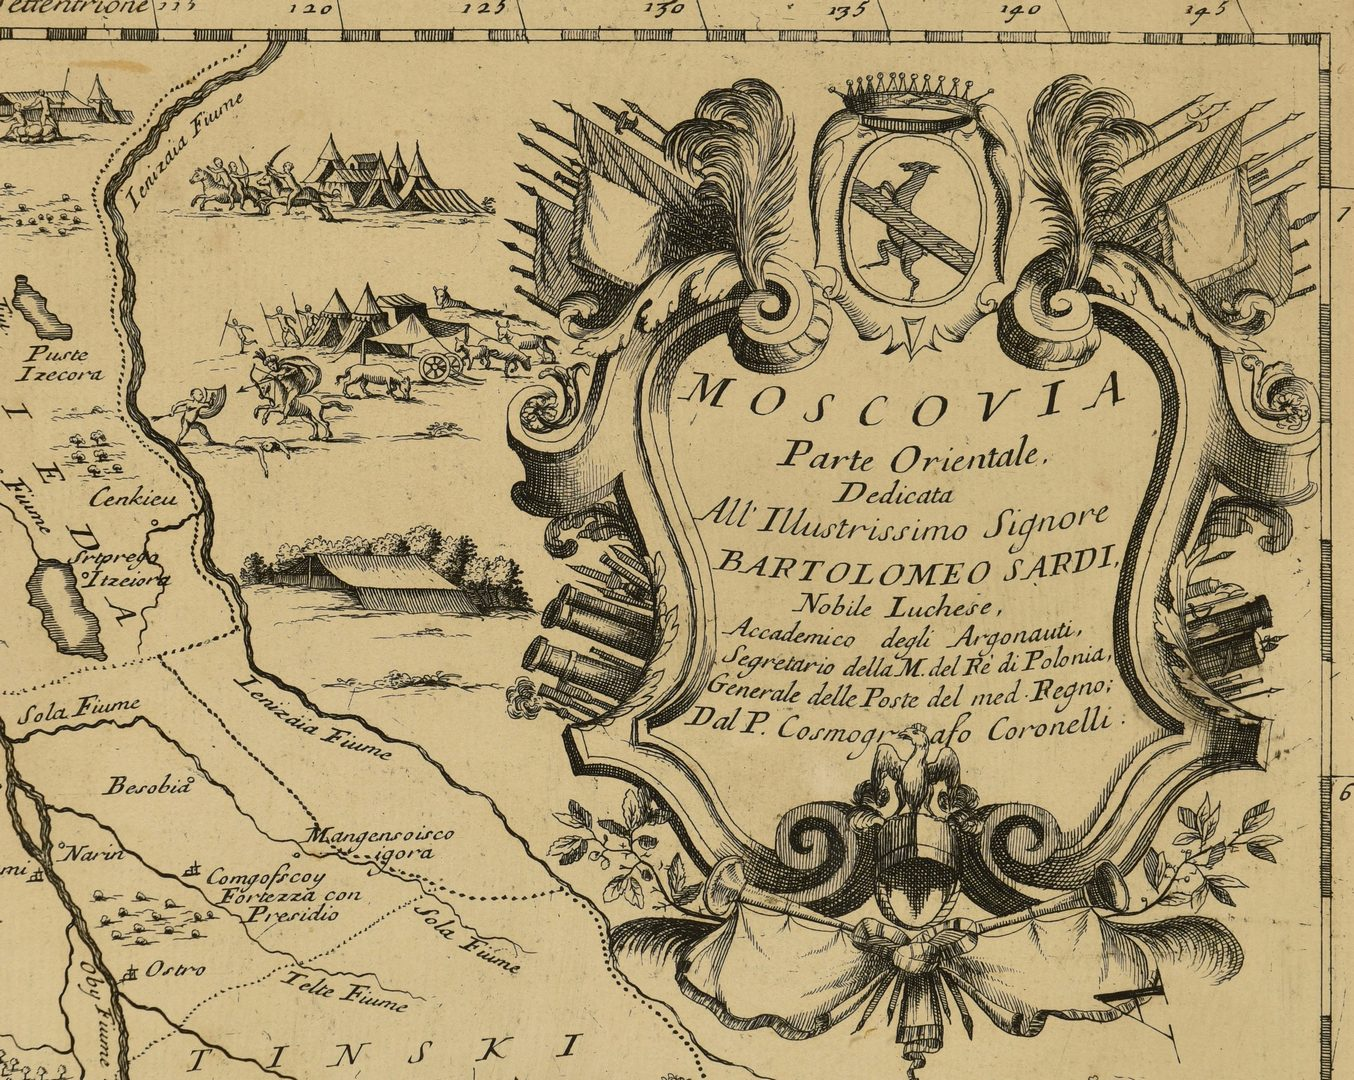 Lot 710: View of Pisa and Italian Map of Russia